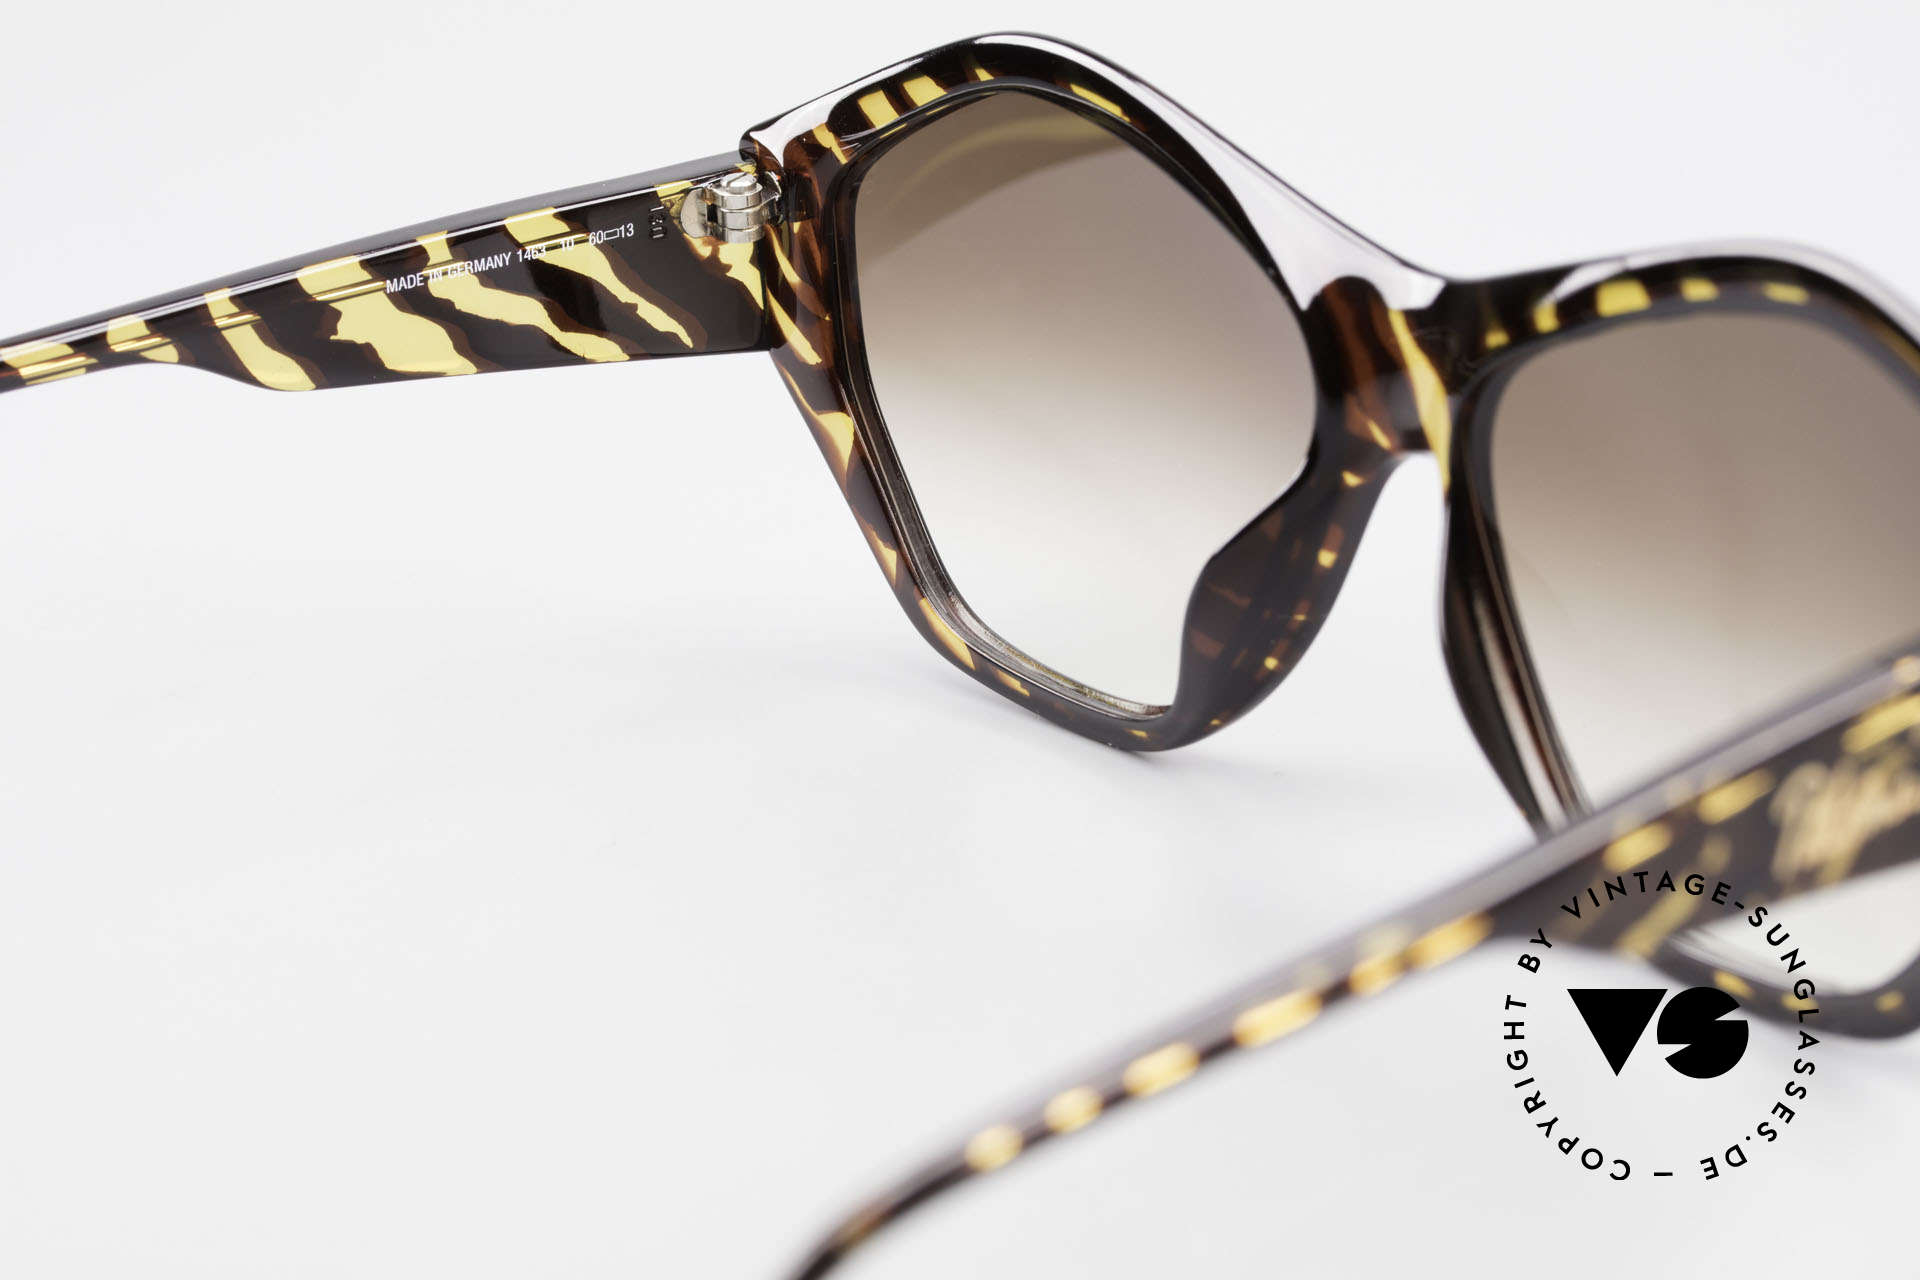 Paloma Picasso 1463 90's Optyl Sunglasses Ladies, of course never worn (as all our old 90's treasures), Made for Women